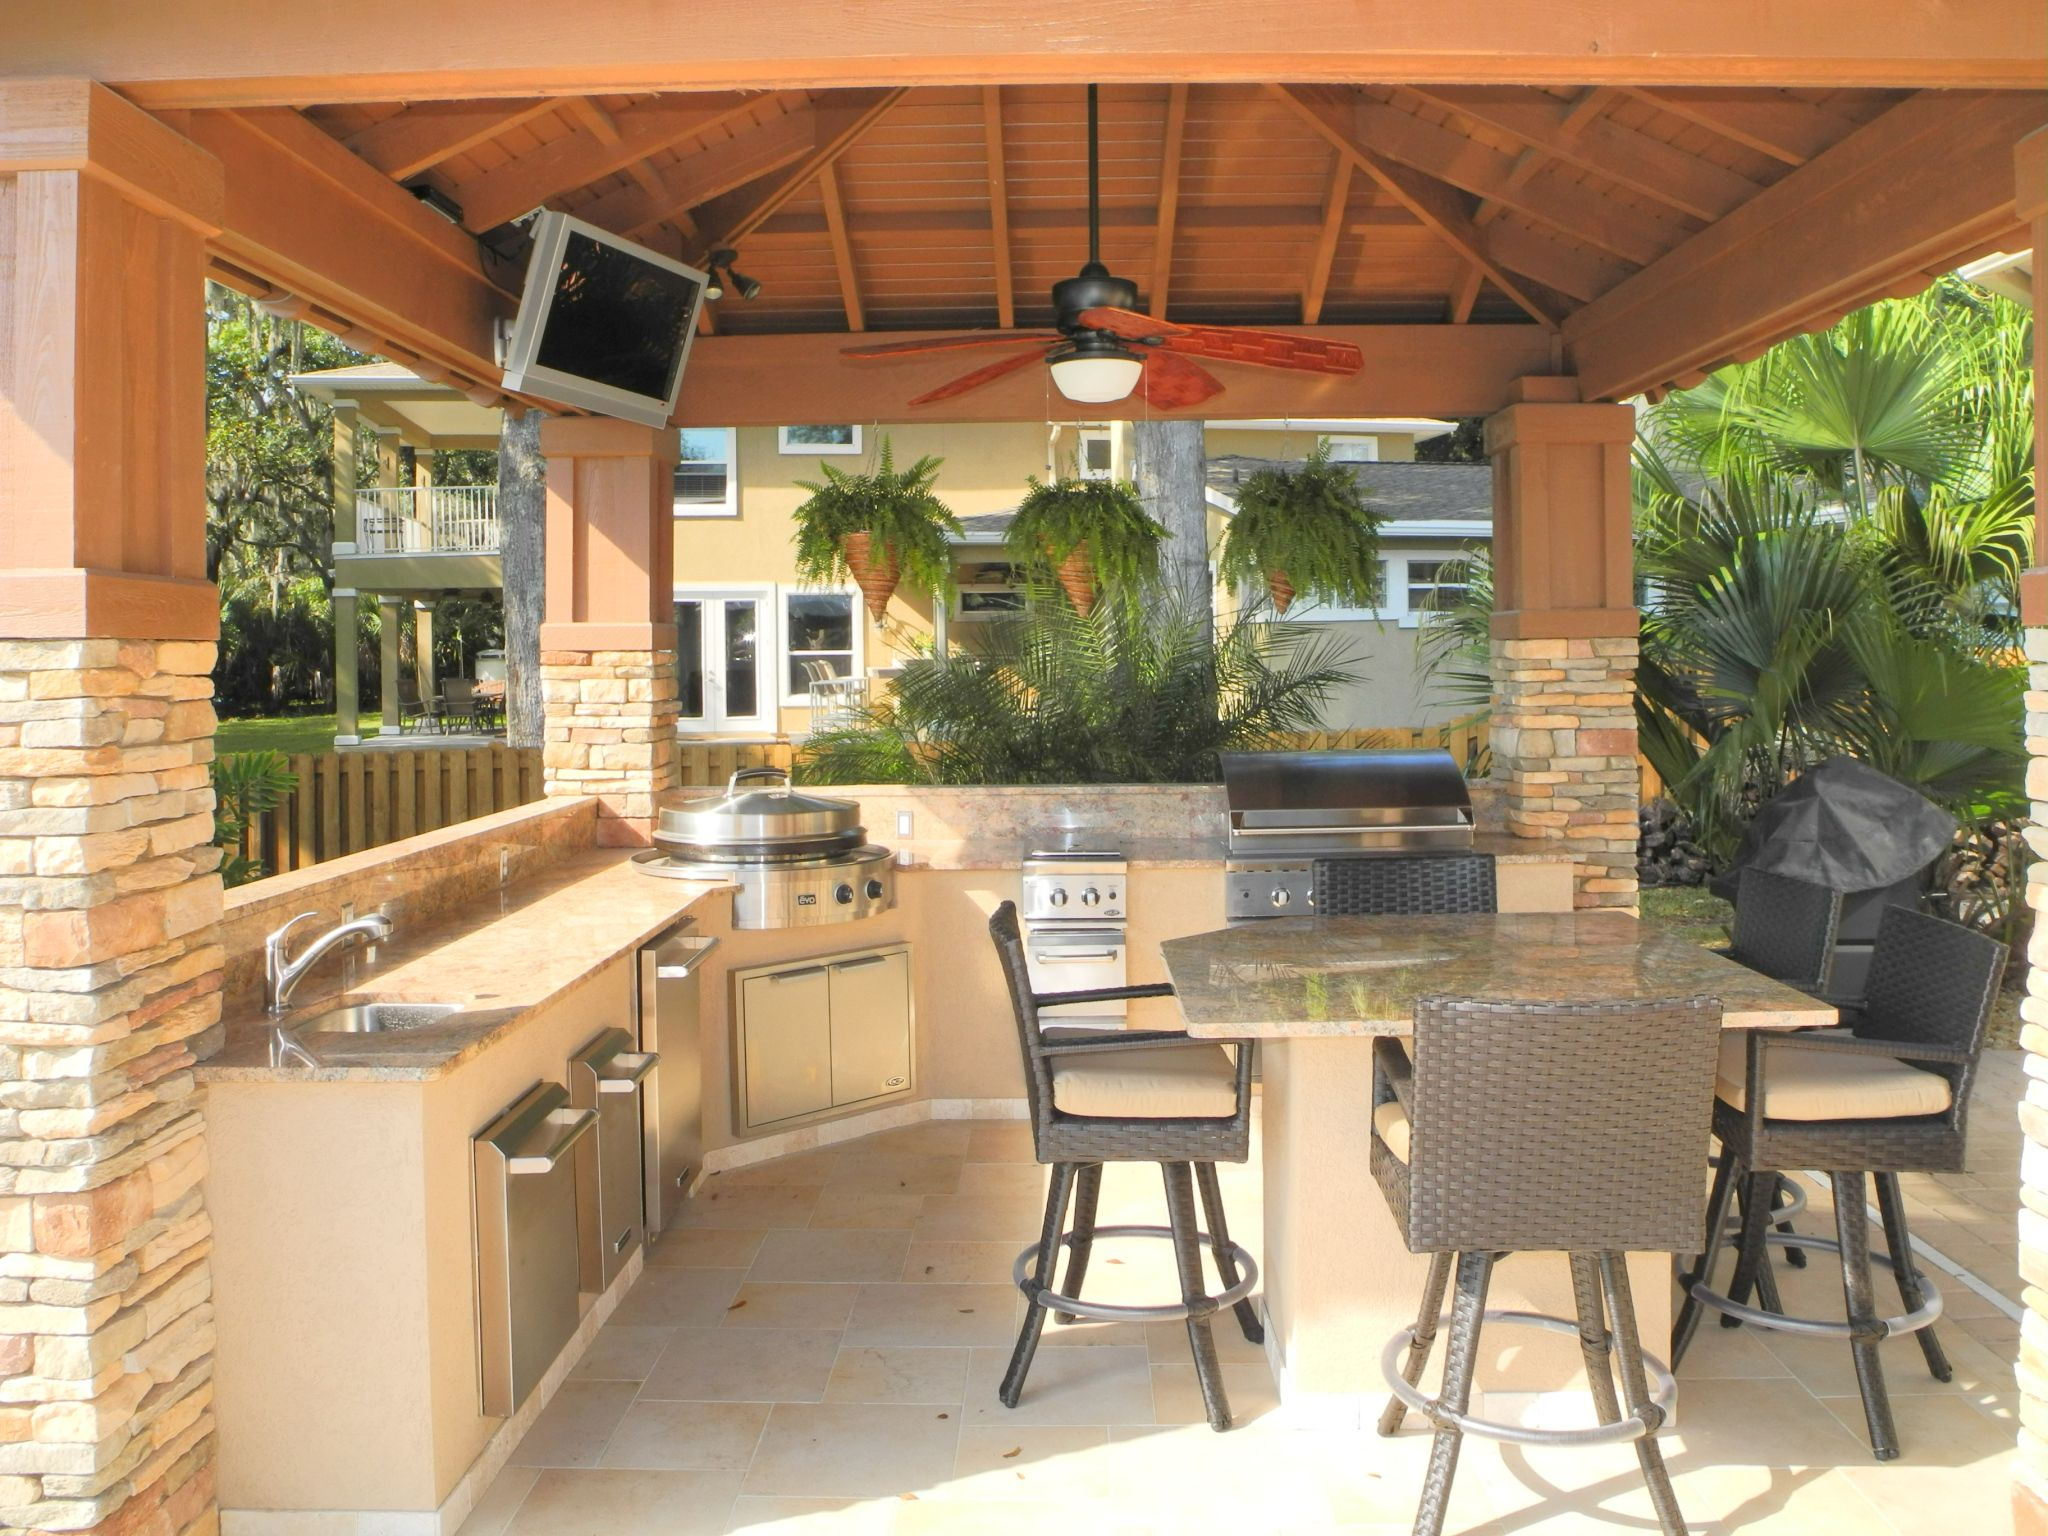 Outdoor Kitchen Pavilion Designs Favorite Interior Paint Colors Check More At Http Www Mtbasics